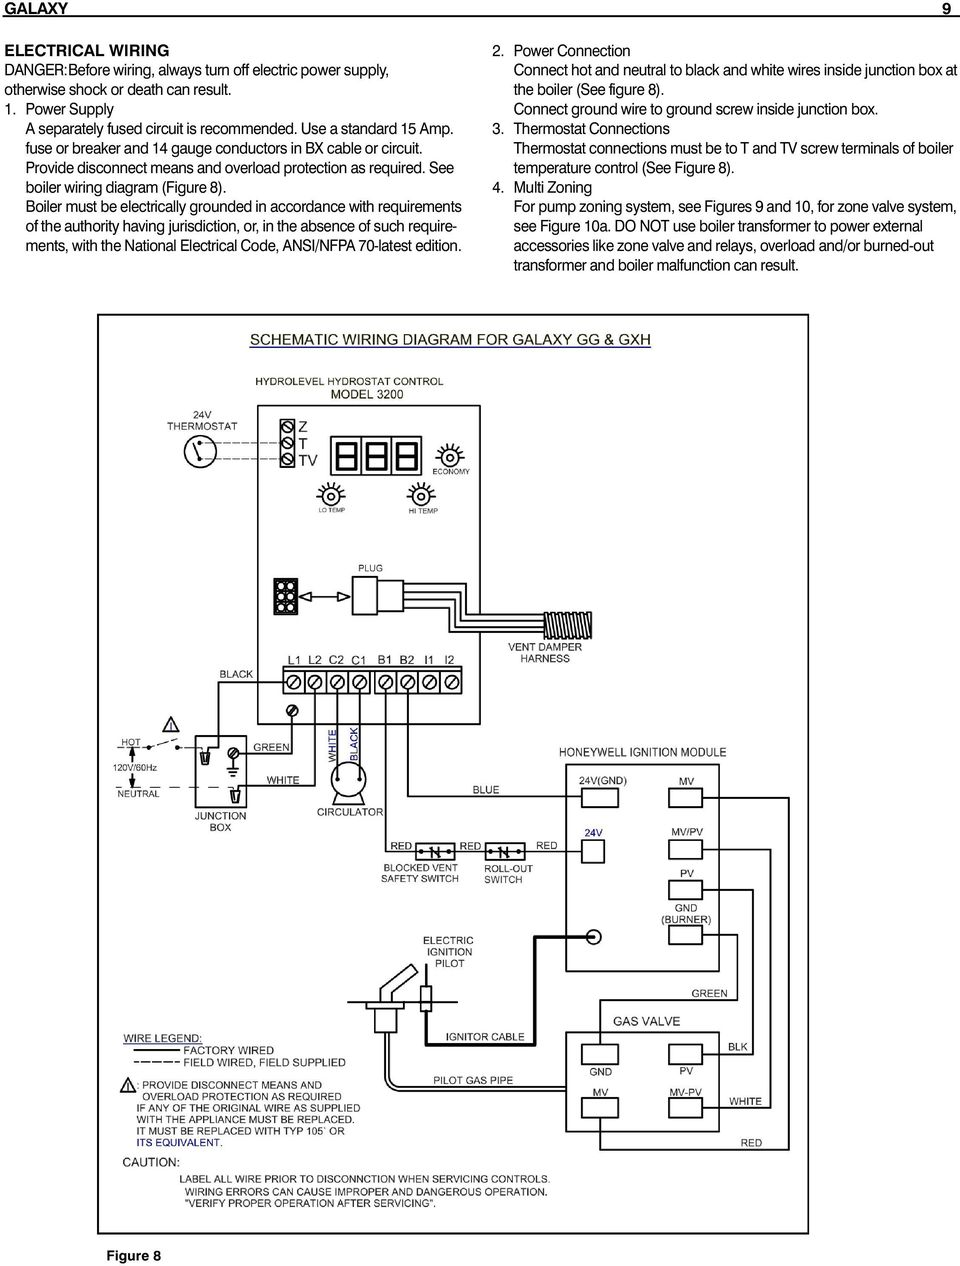 Galaxy Installation And Operating Instructions Gas Fired Cast Iron Crown Boiler Wiring Diagram Must Be Electrically Grounded In Accordance With Requirements Of The Authority Having Jurisdiction Or